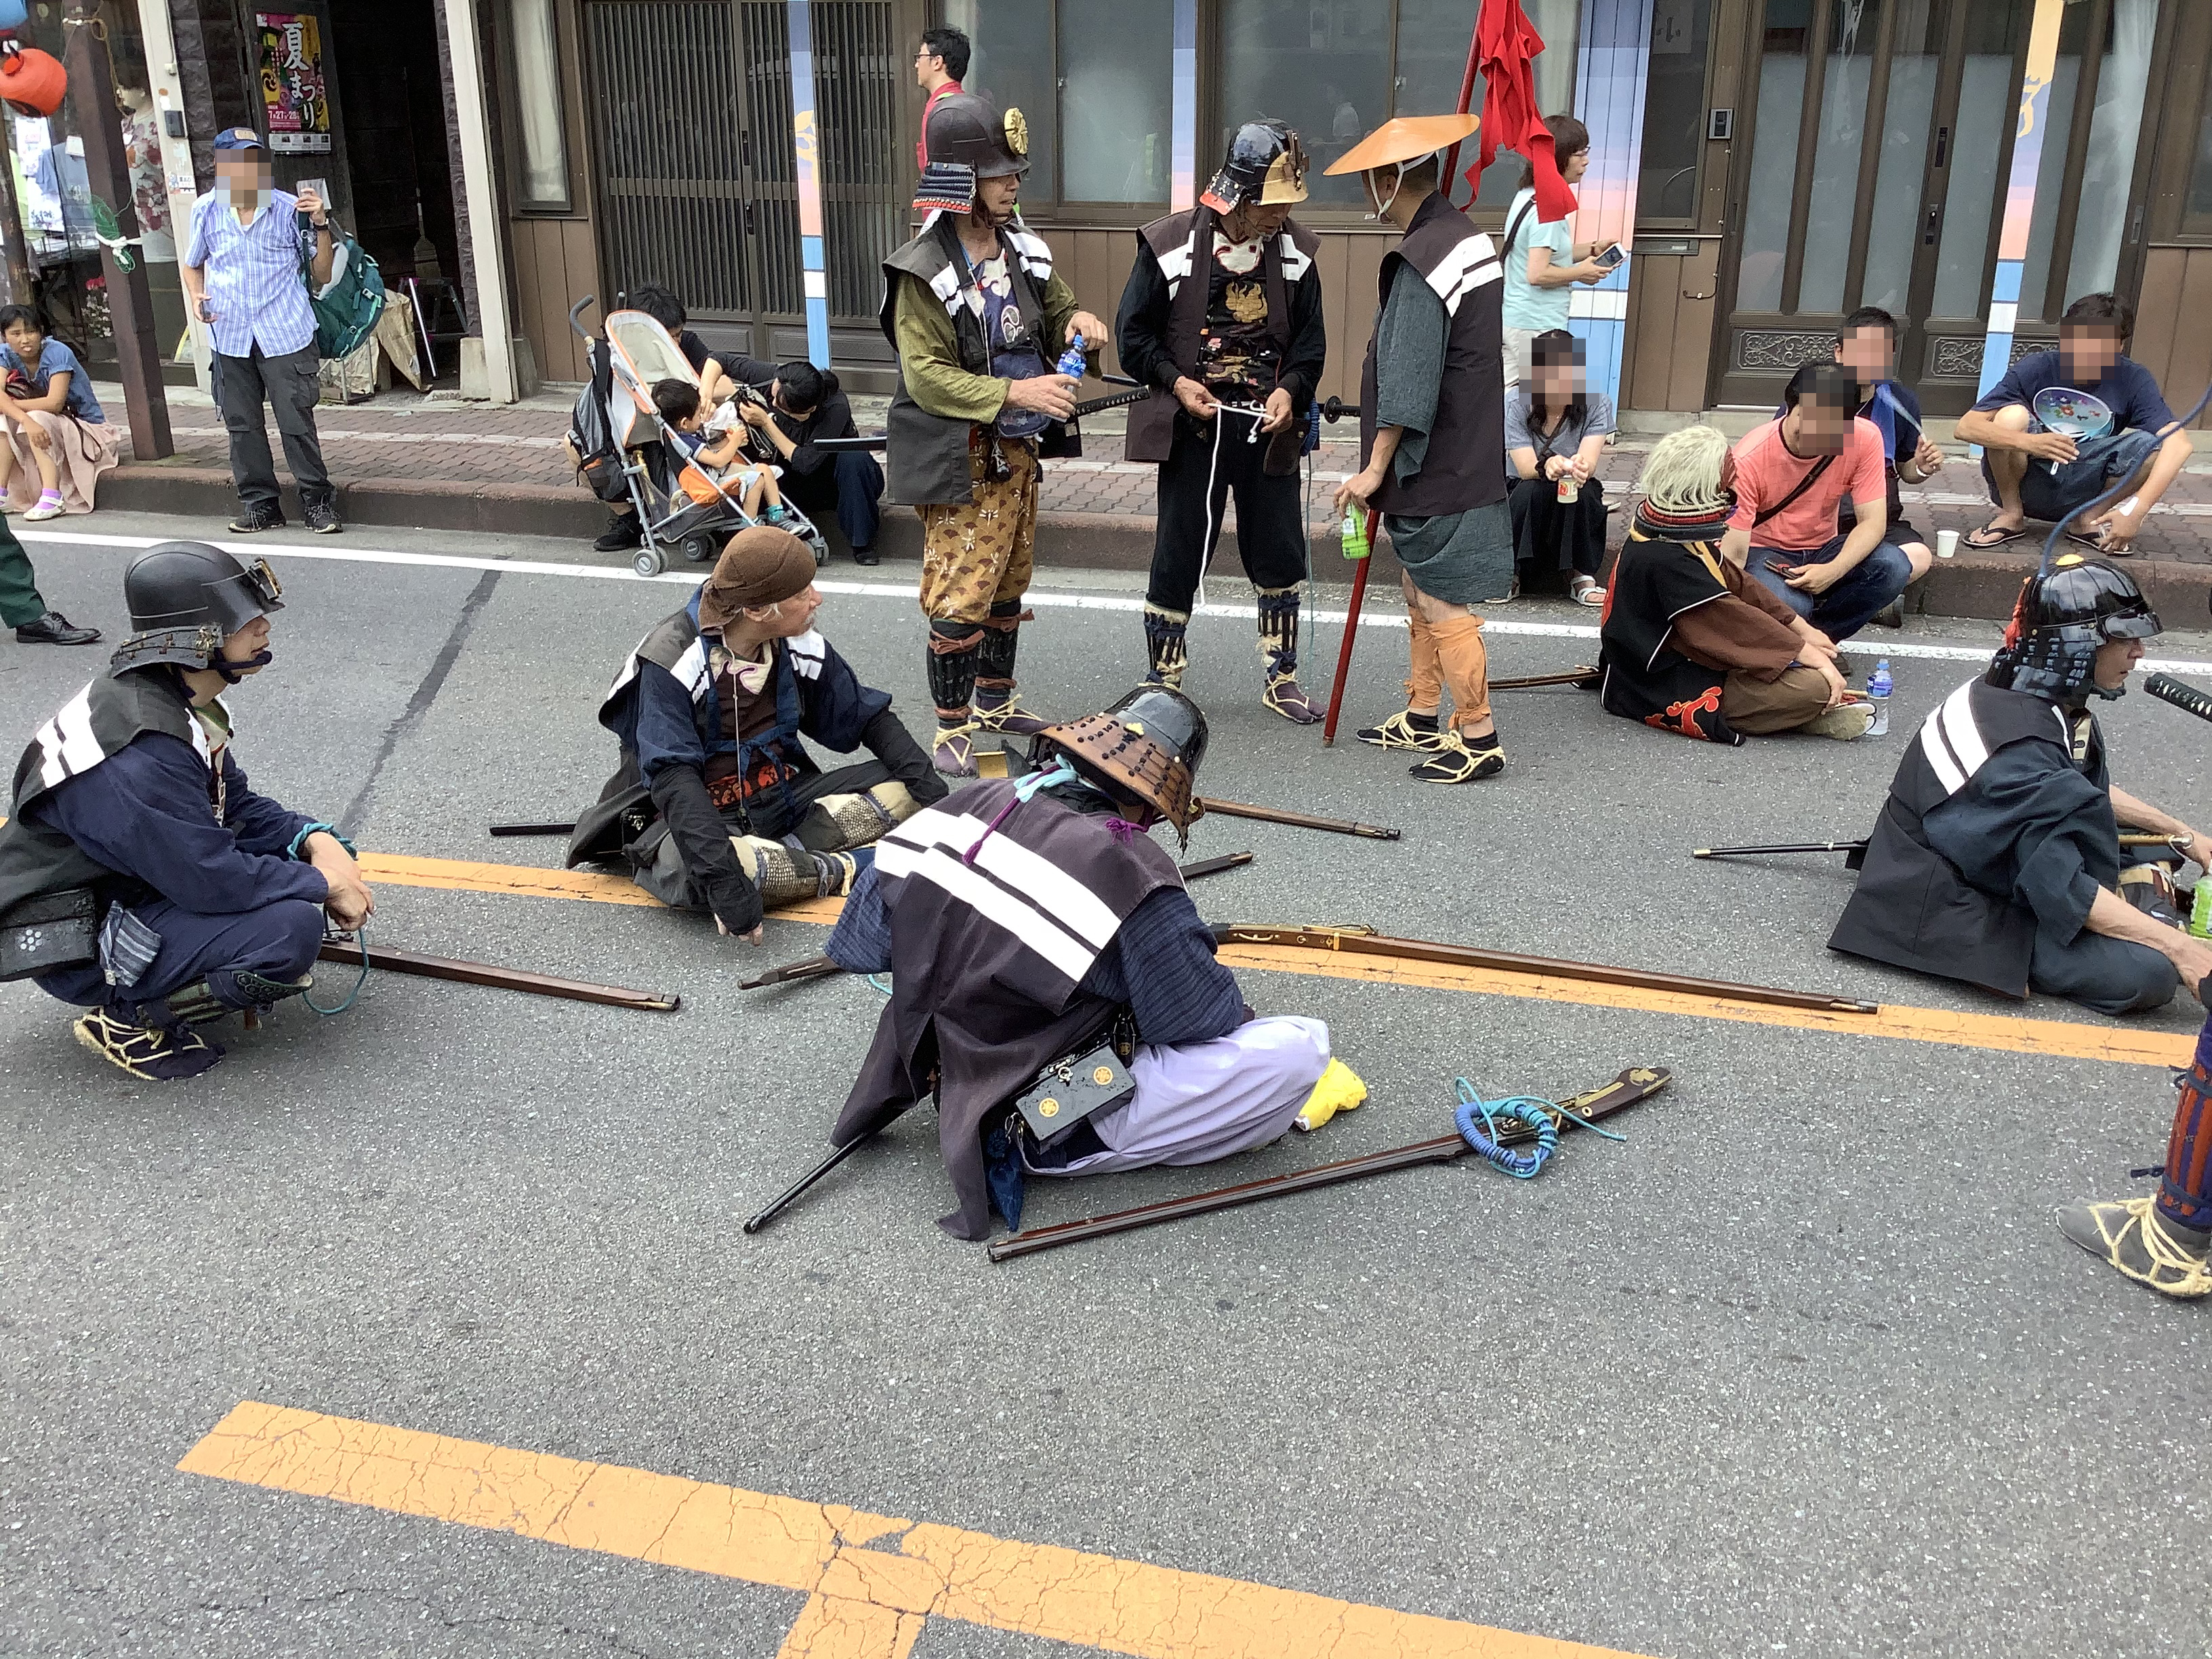 Samurais with Japanese rifles